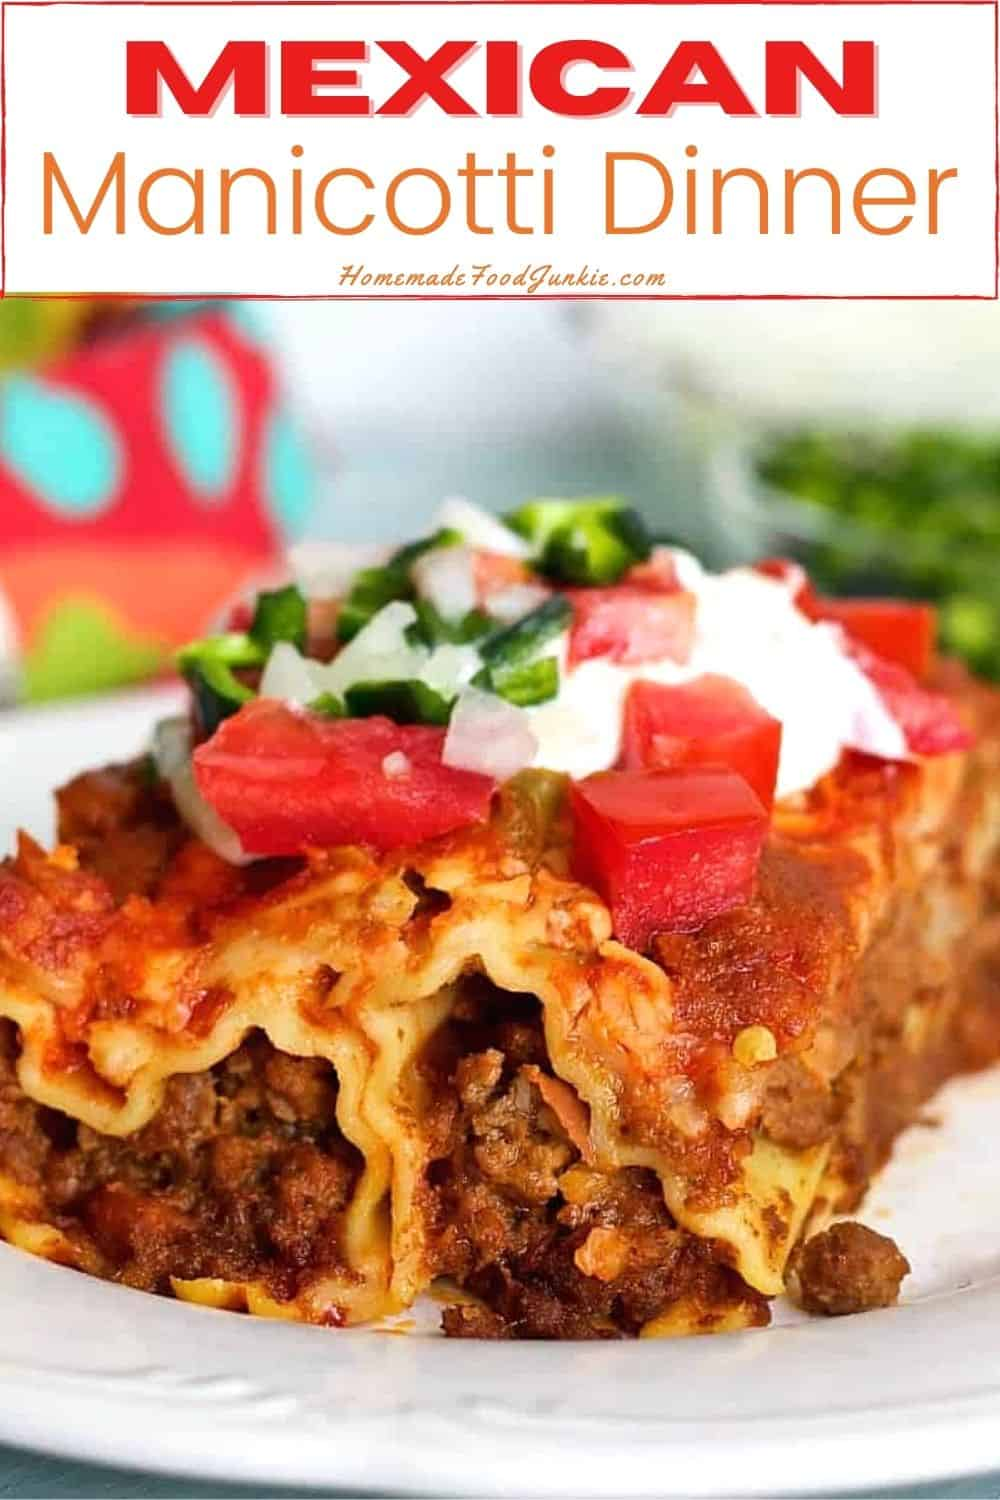 Mexican manicotti dinner-pin image